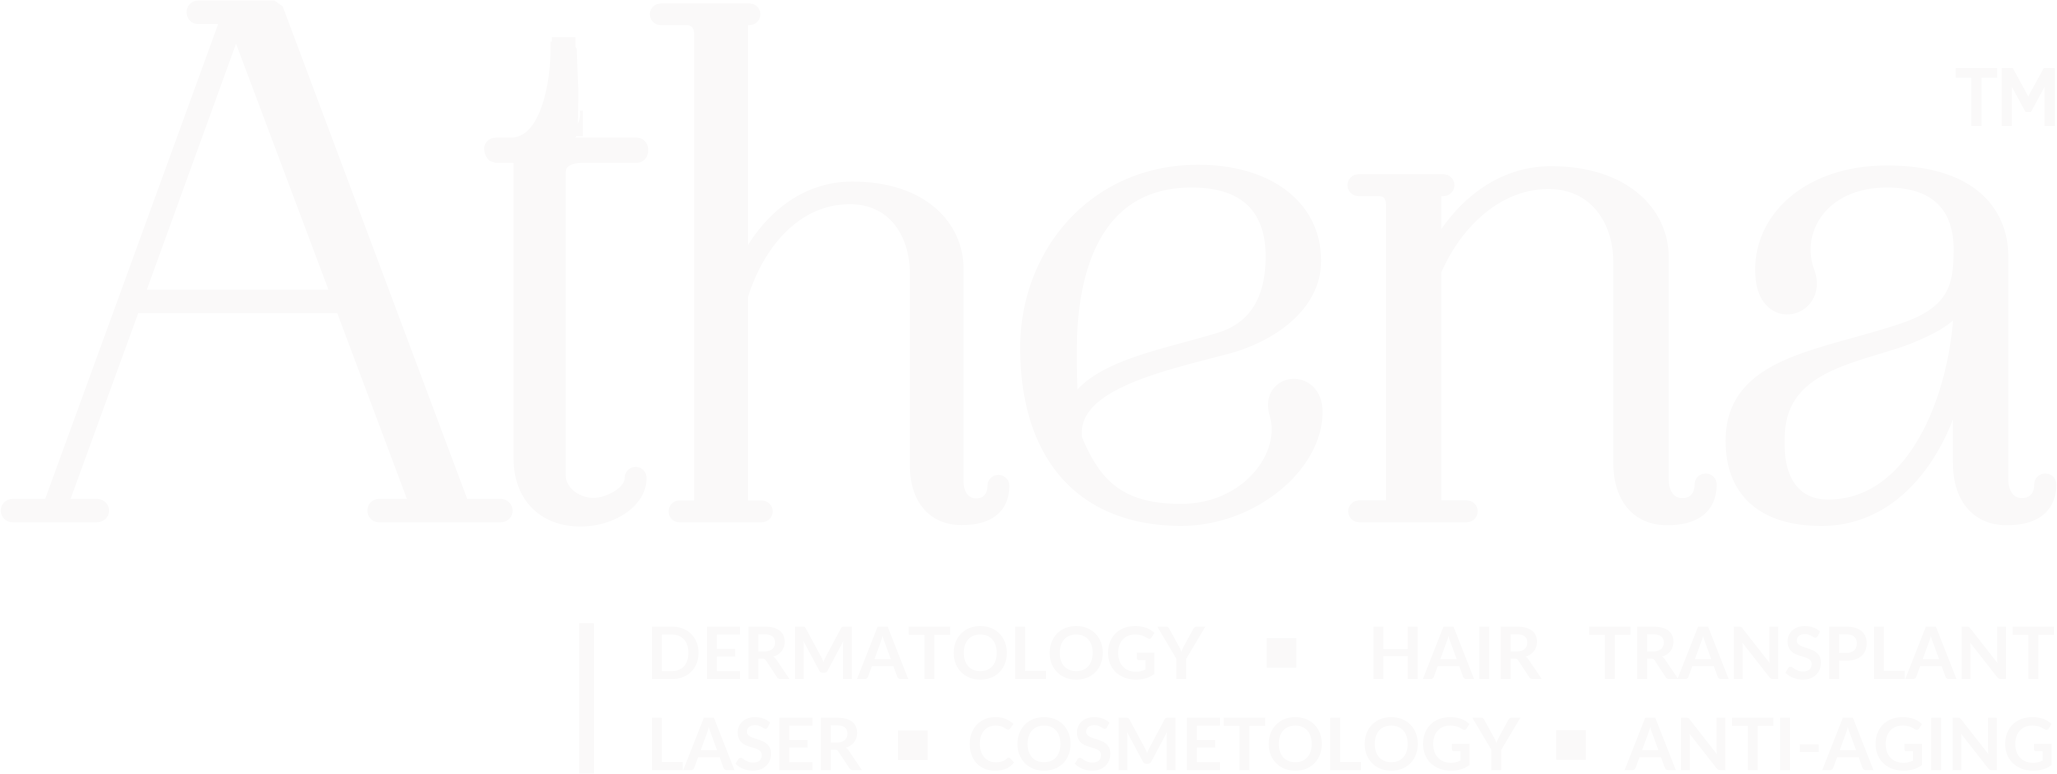 Best Skin Specialist |Doctor Clinic |Dermatologist in Chandigarh